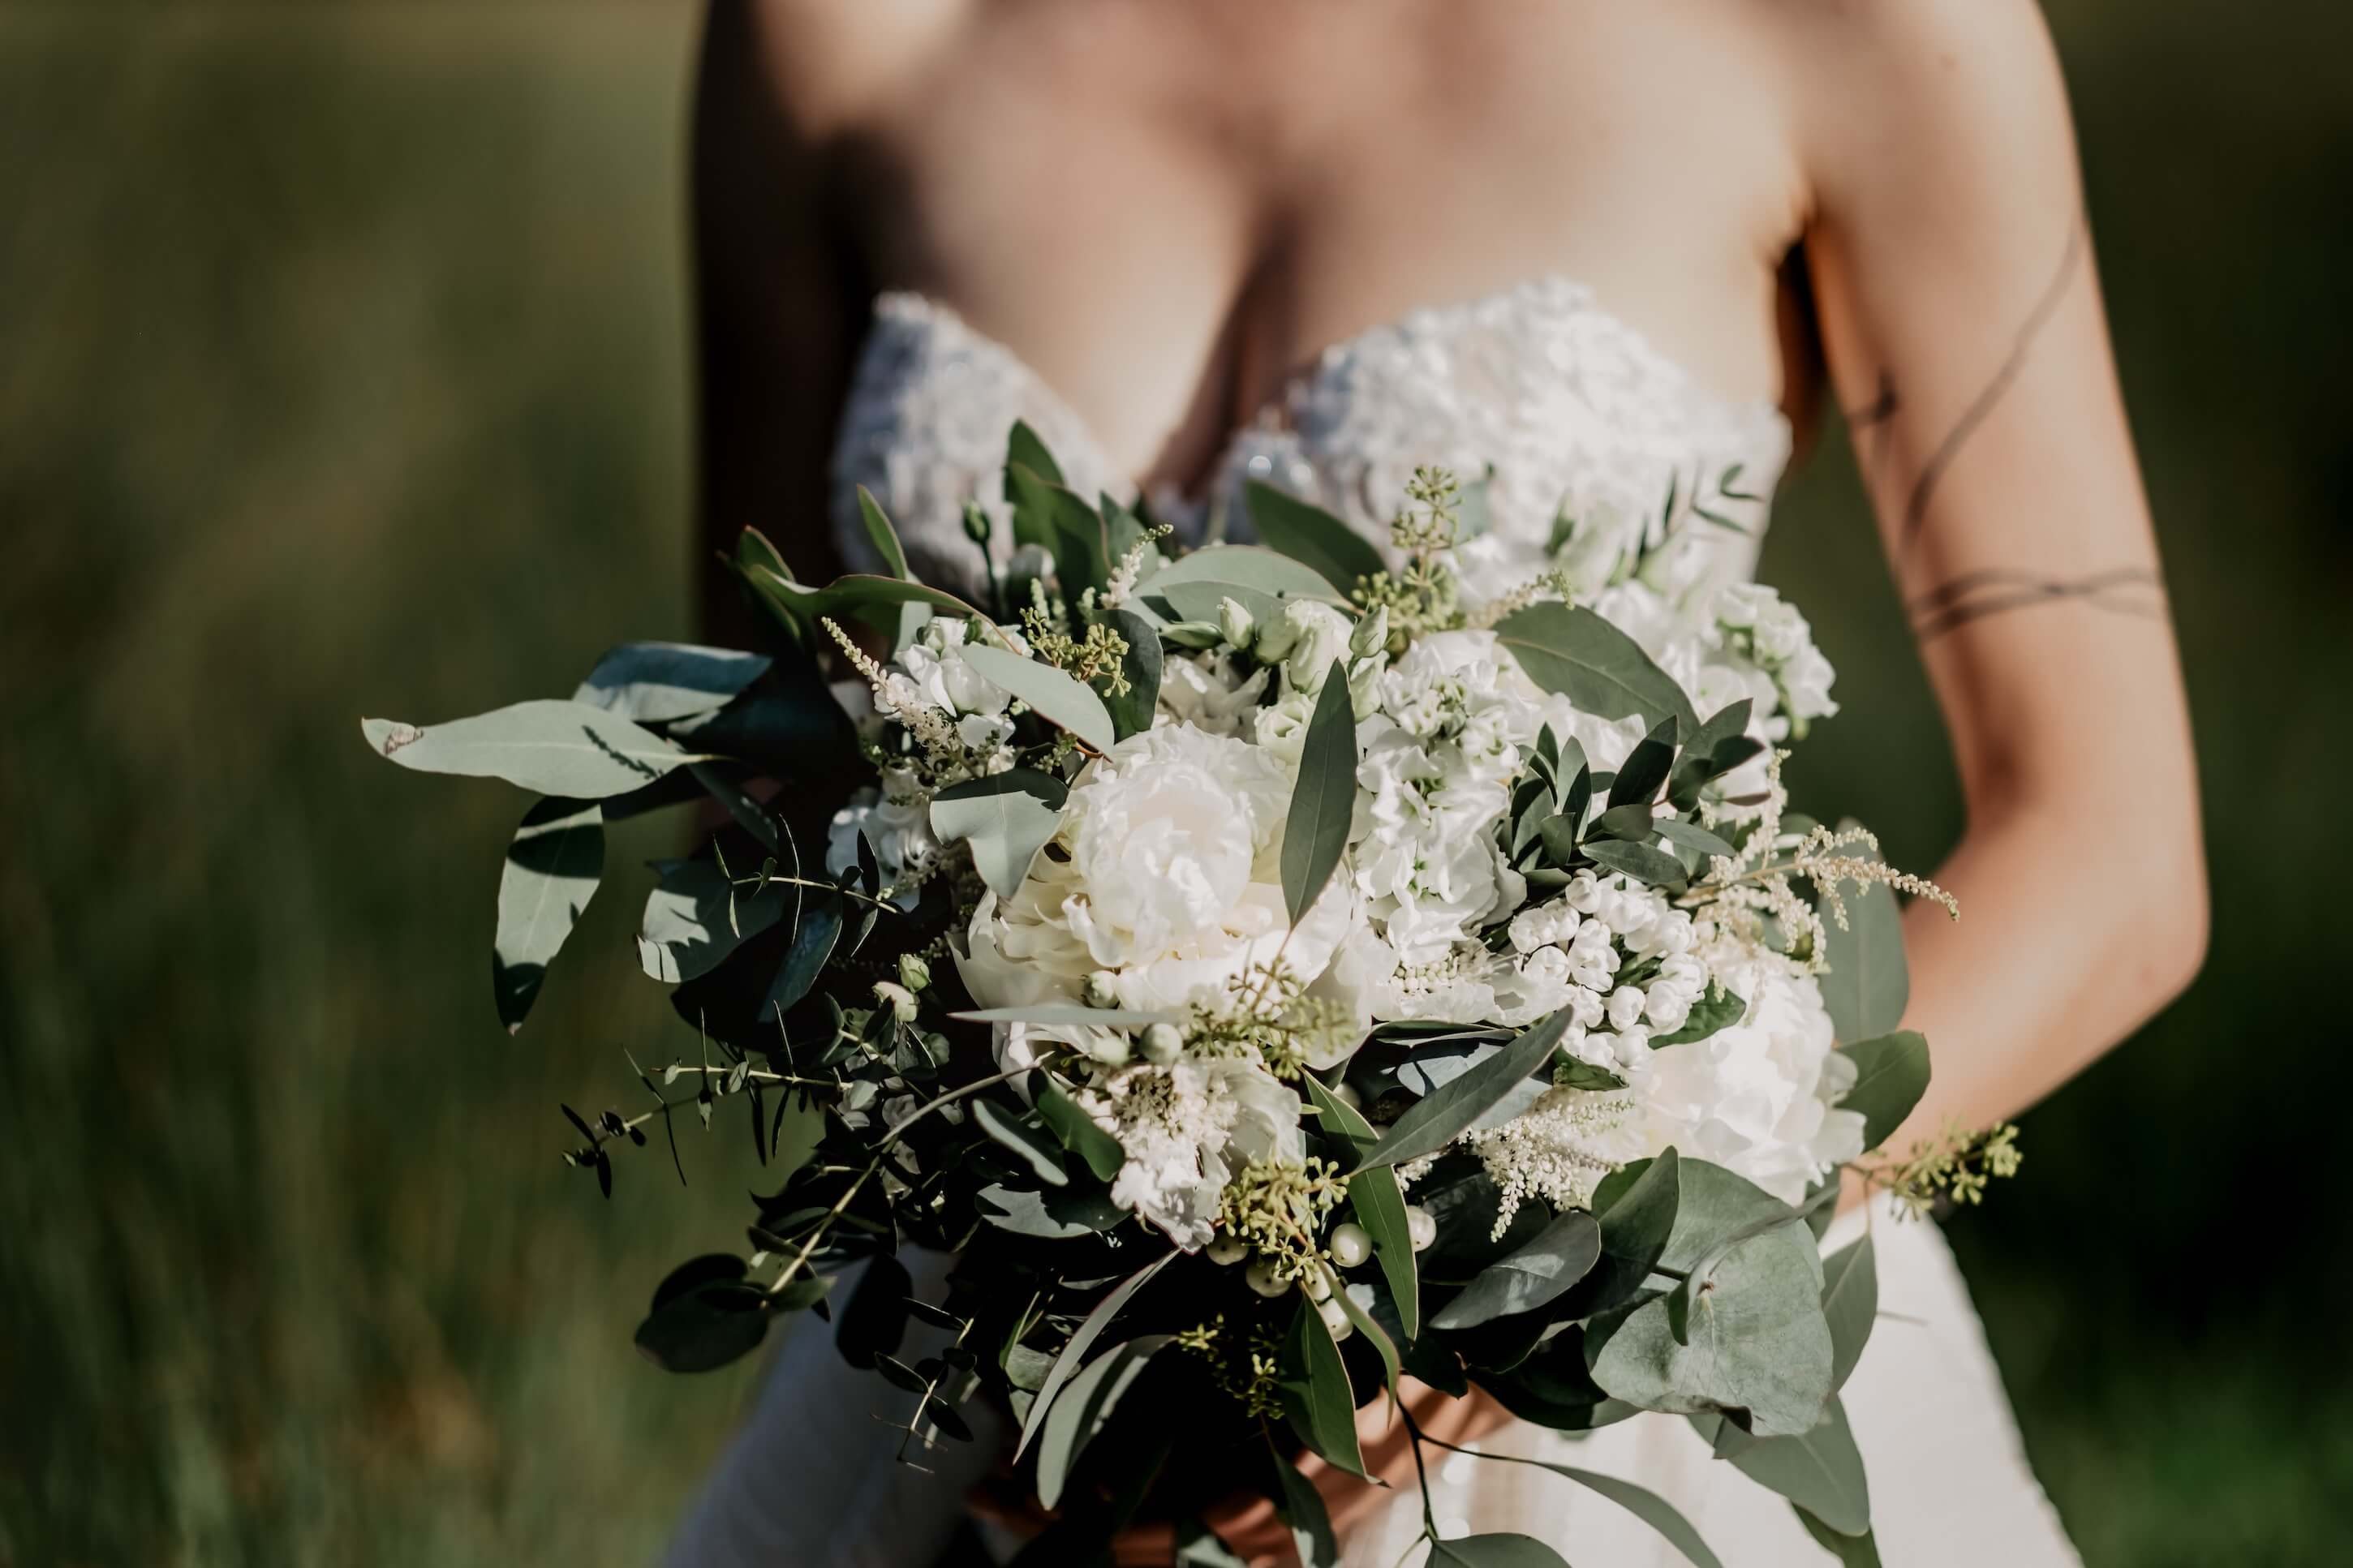 A bride holds her flowers as she walks down the aisle